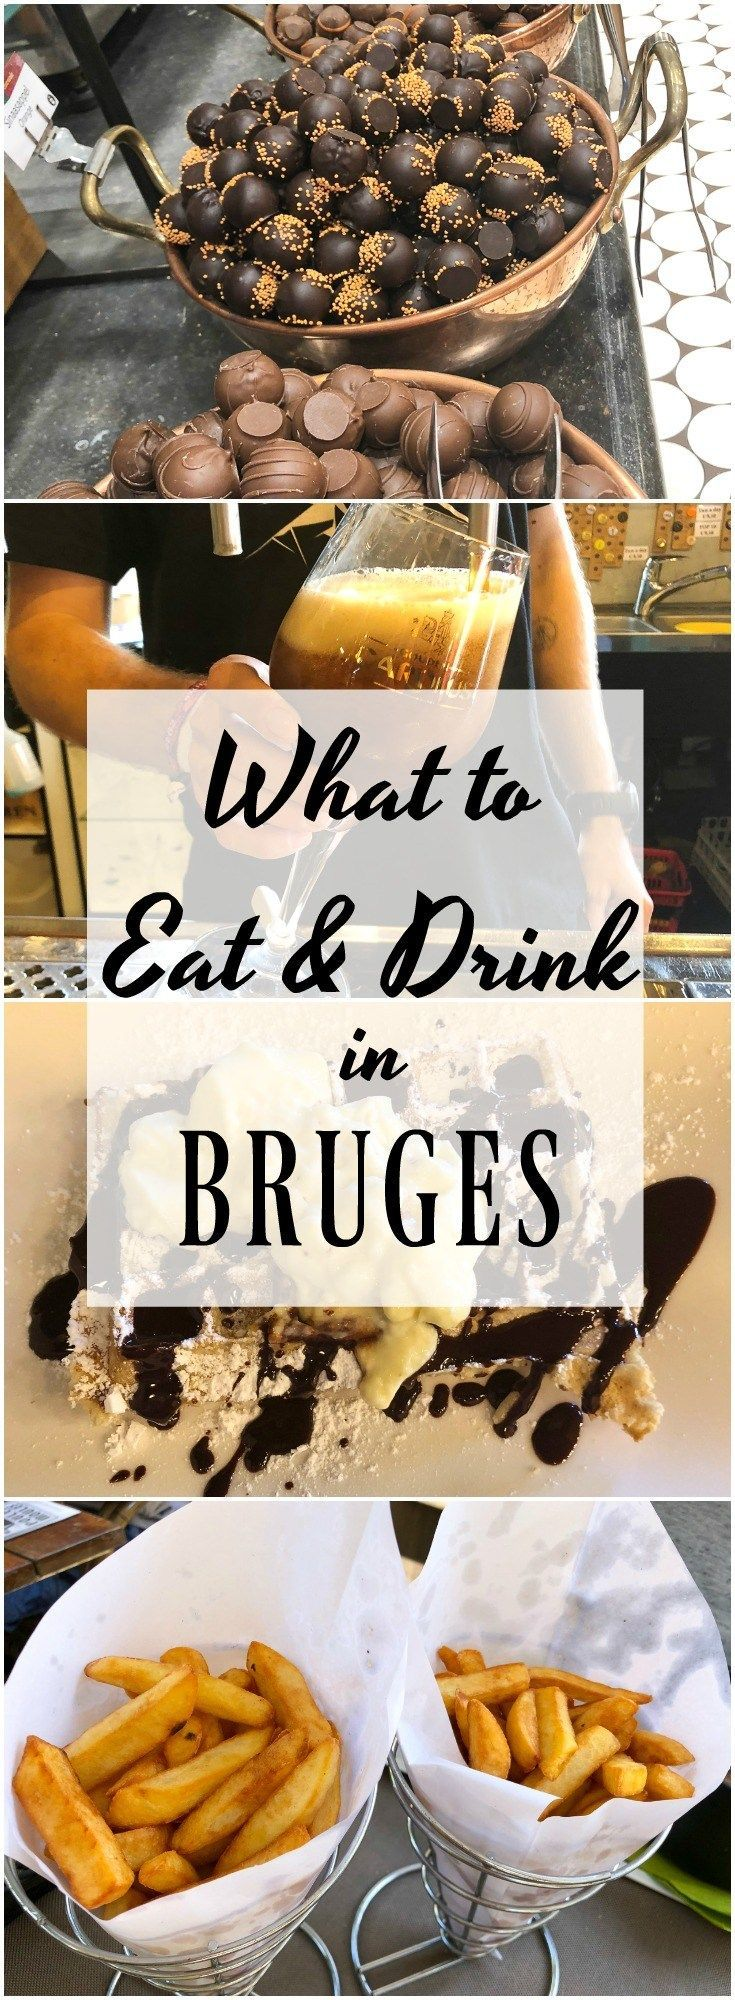 Photo of WHAT TO EAT & DRINK IN BRUGES | Everyday Laura